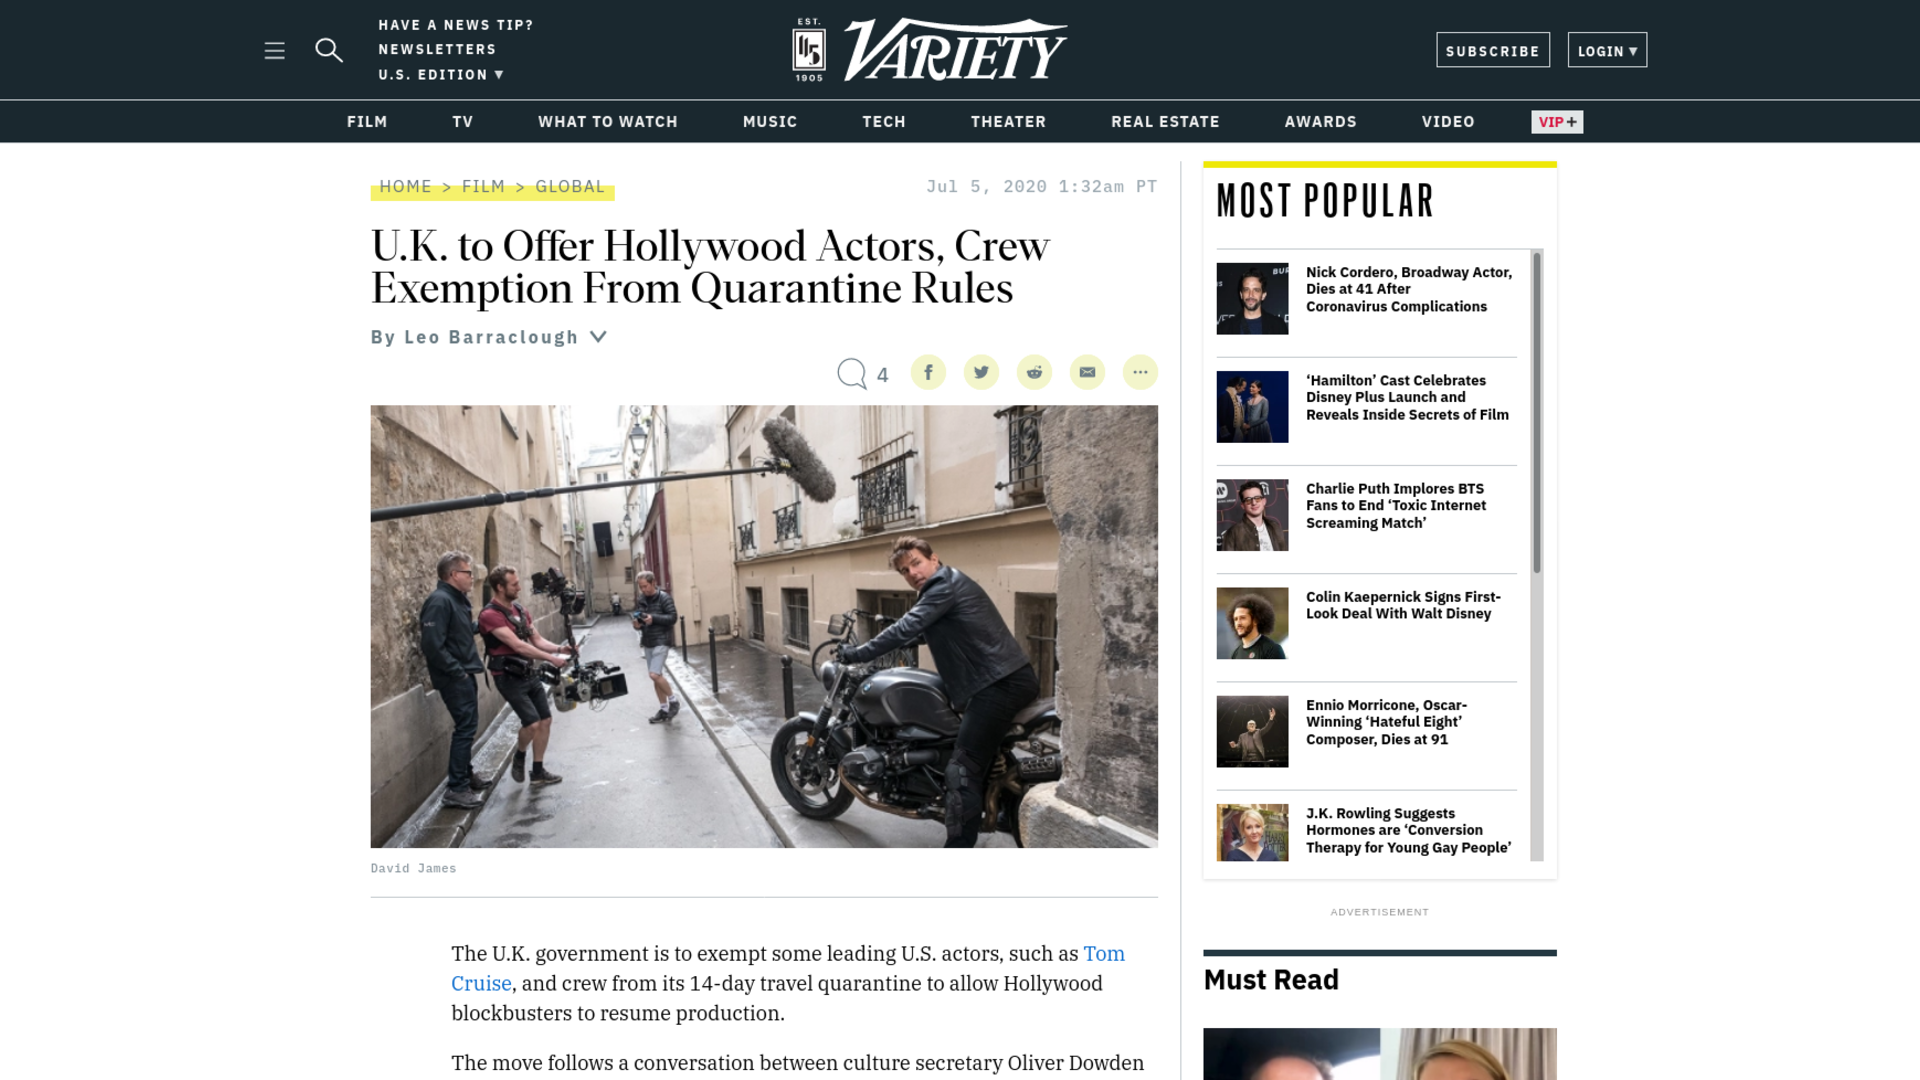 Fairness Rocks News U.K. to Offer Hollywood Actors, Crew Exemption From Quarantine Rules